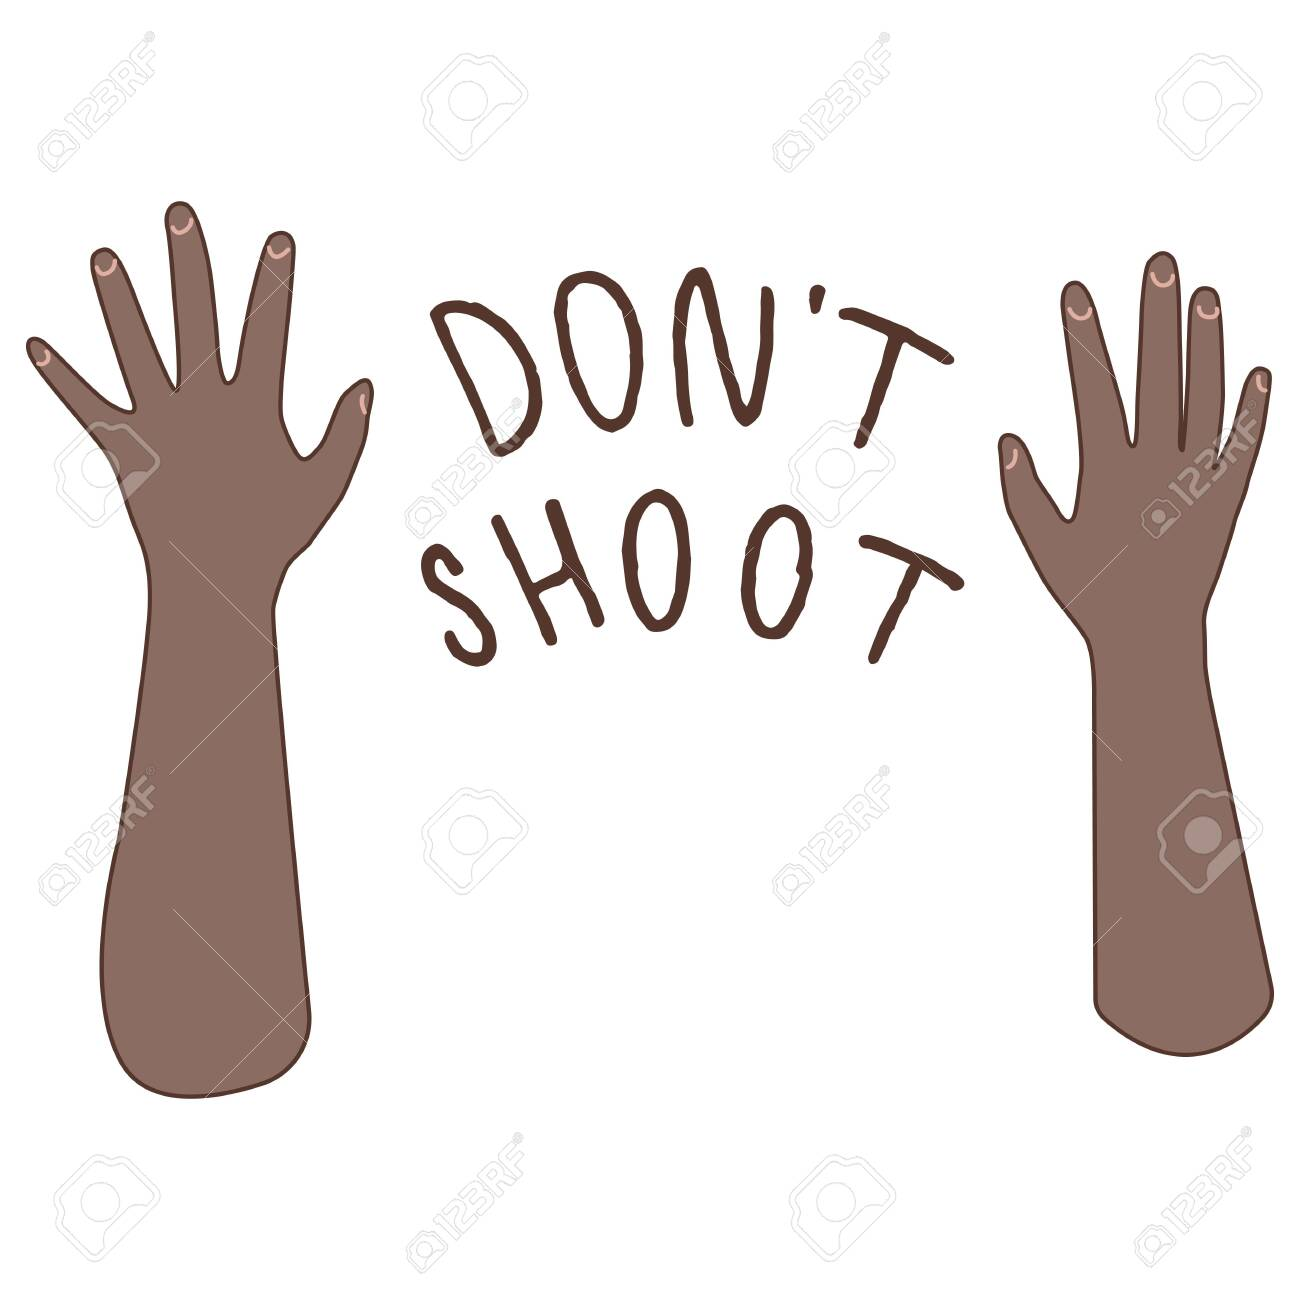 Don't shoot text on white isolated backdrop. Raised afro hand blm poster for invitation or gift card, social banner, news blog, flyer. Phone case or cloth print. Doodle style stock vector illustration - 150168852